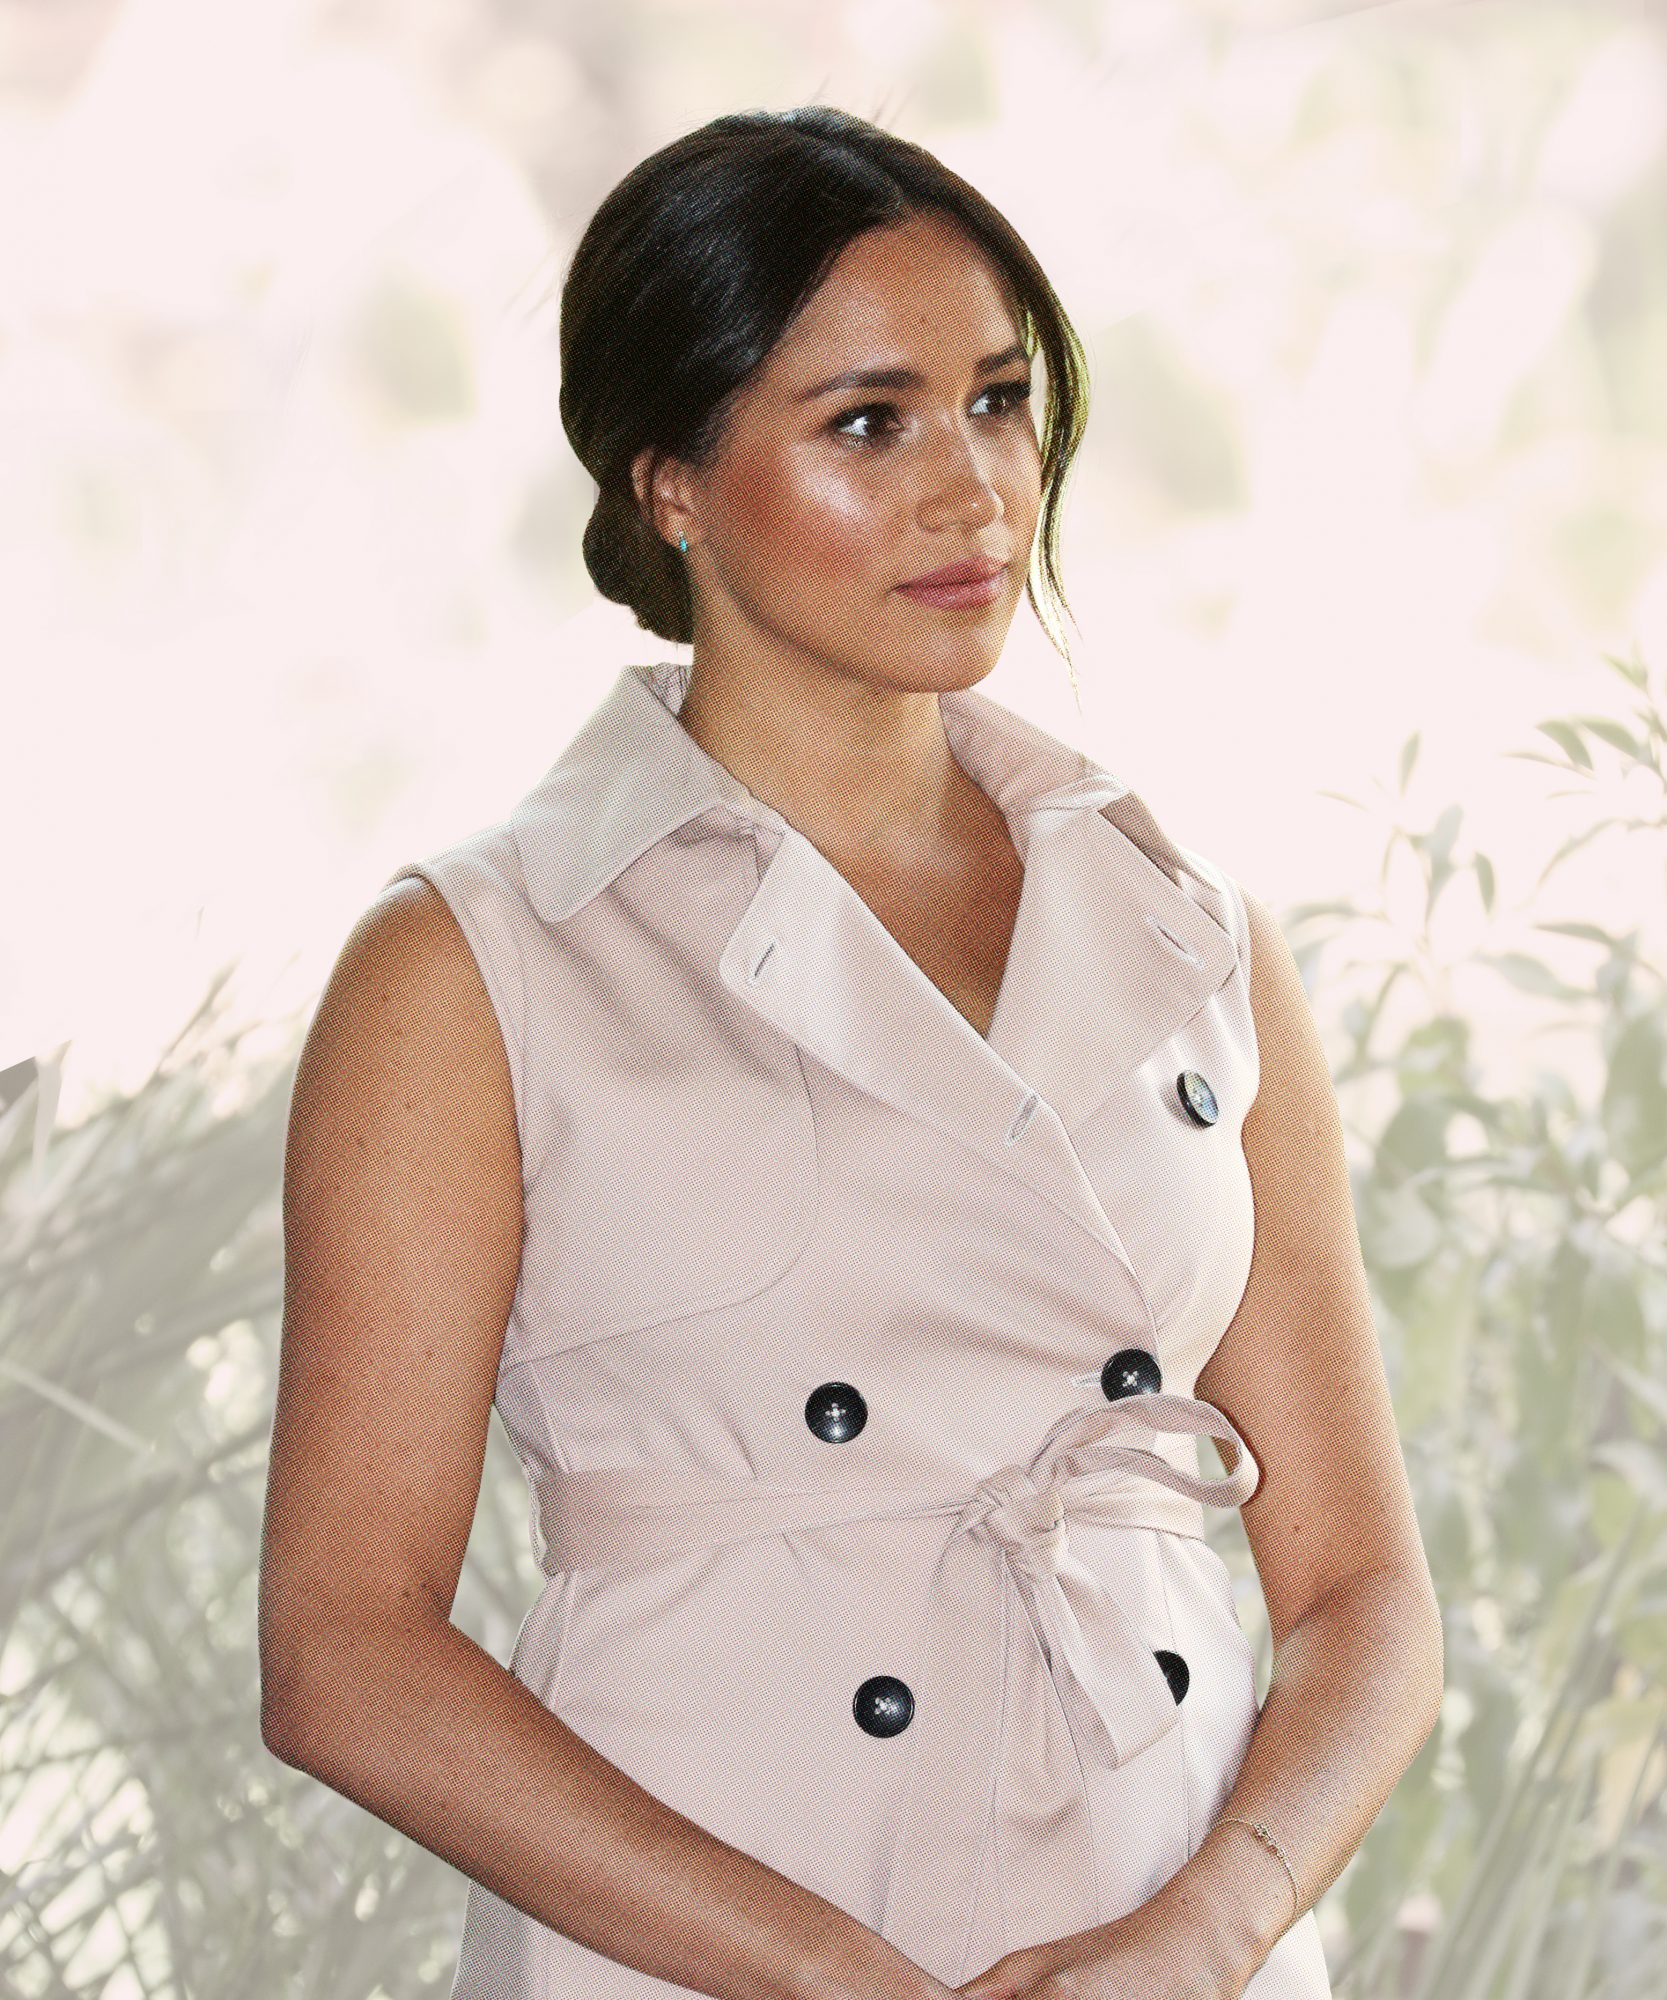 Meghan Markle Isnt Alone - Society Is Not Set Up to Support Mothers